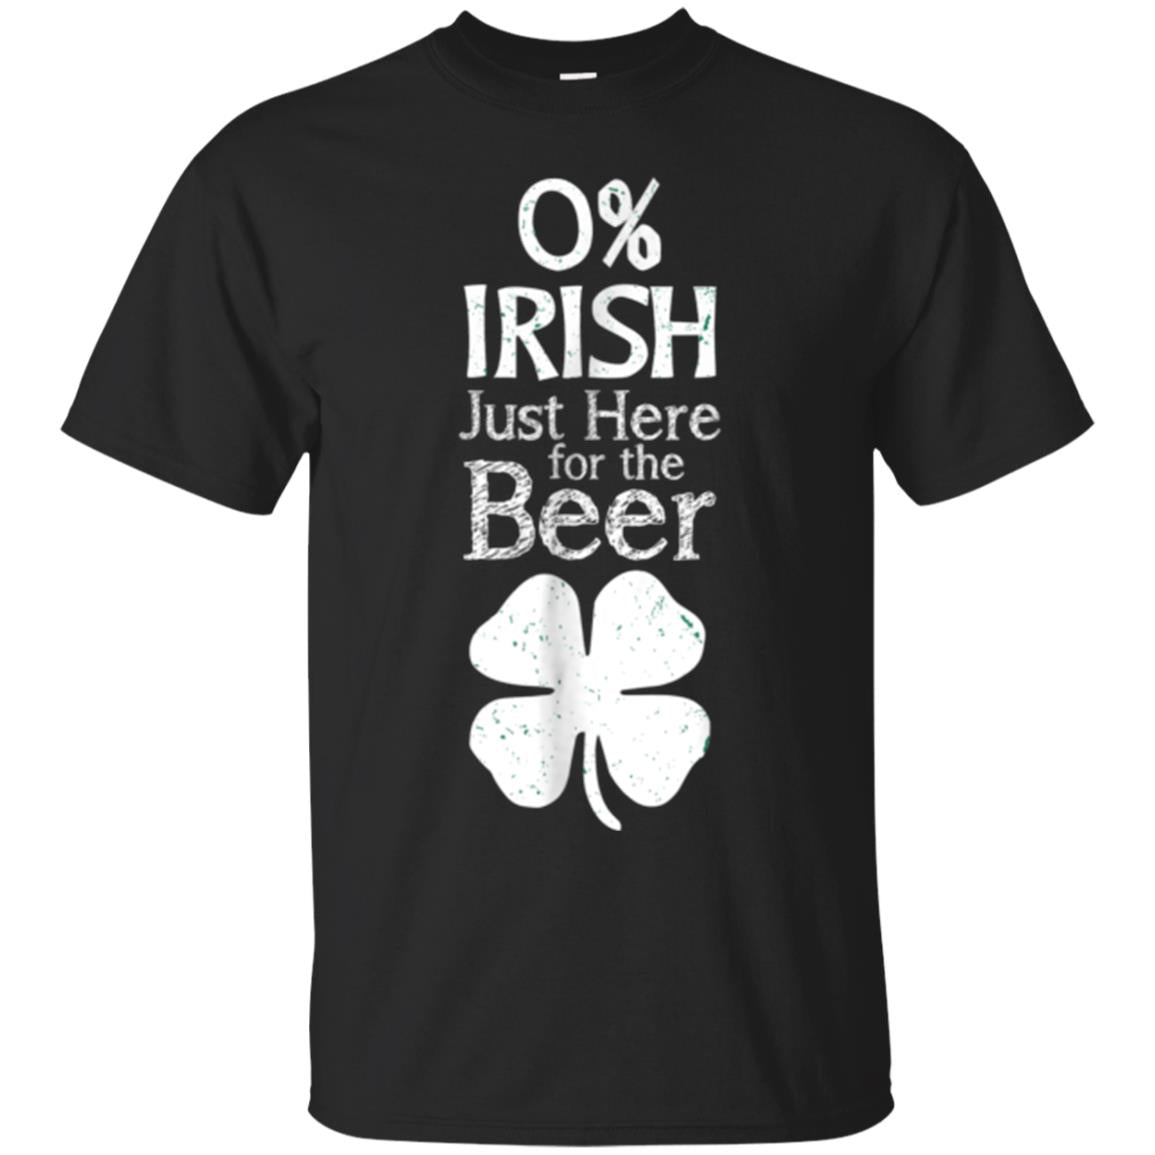 0% Irish Just Here For the Beer St. Paddy's Day Tee Shirt 99promocode